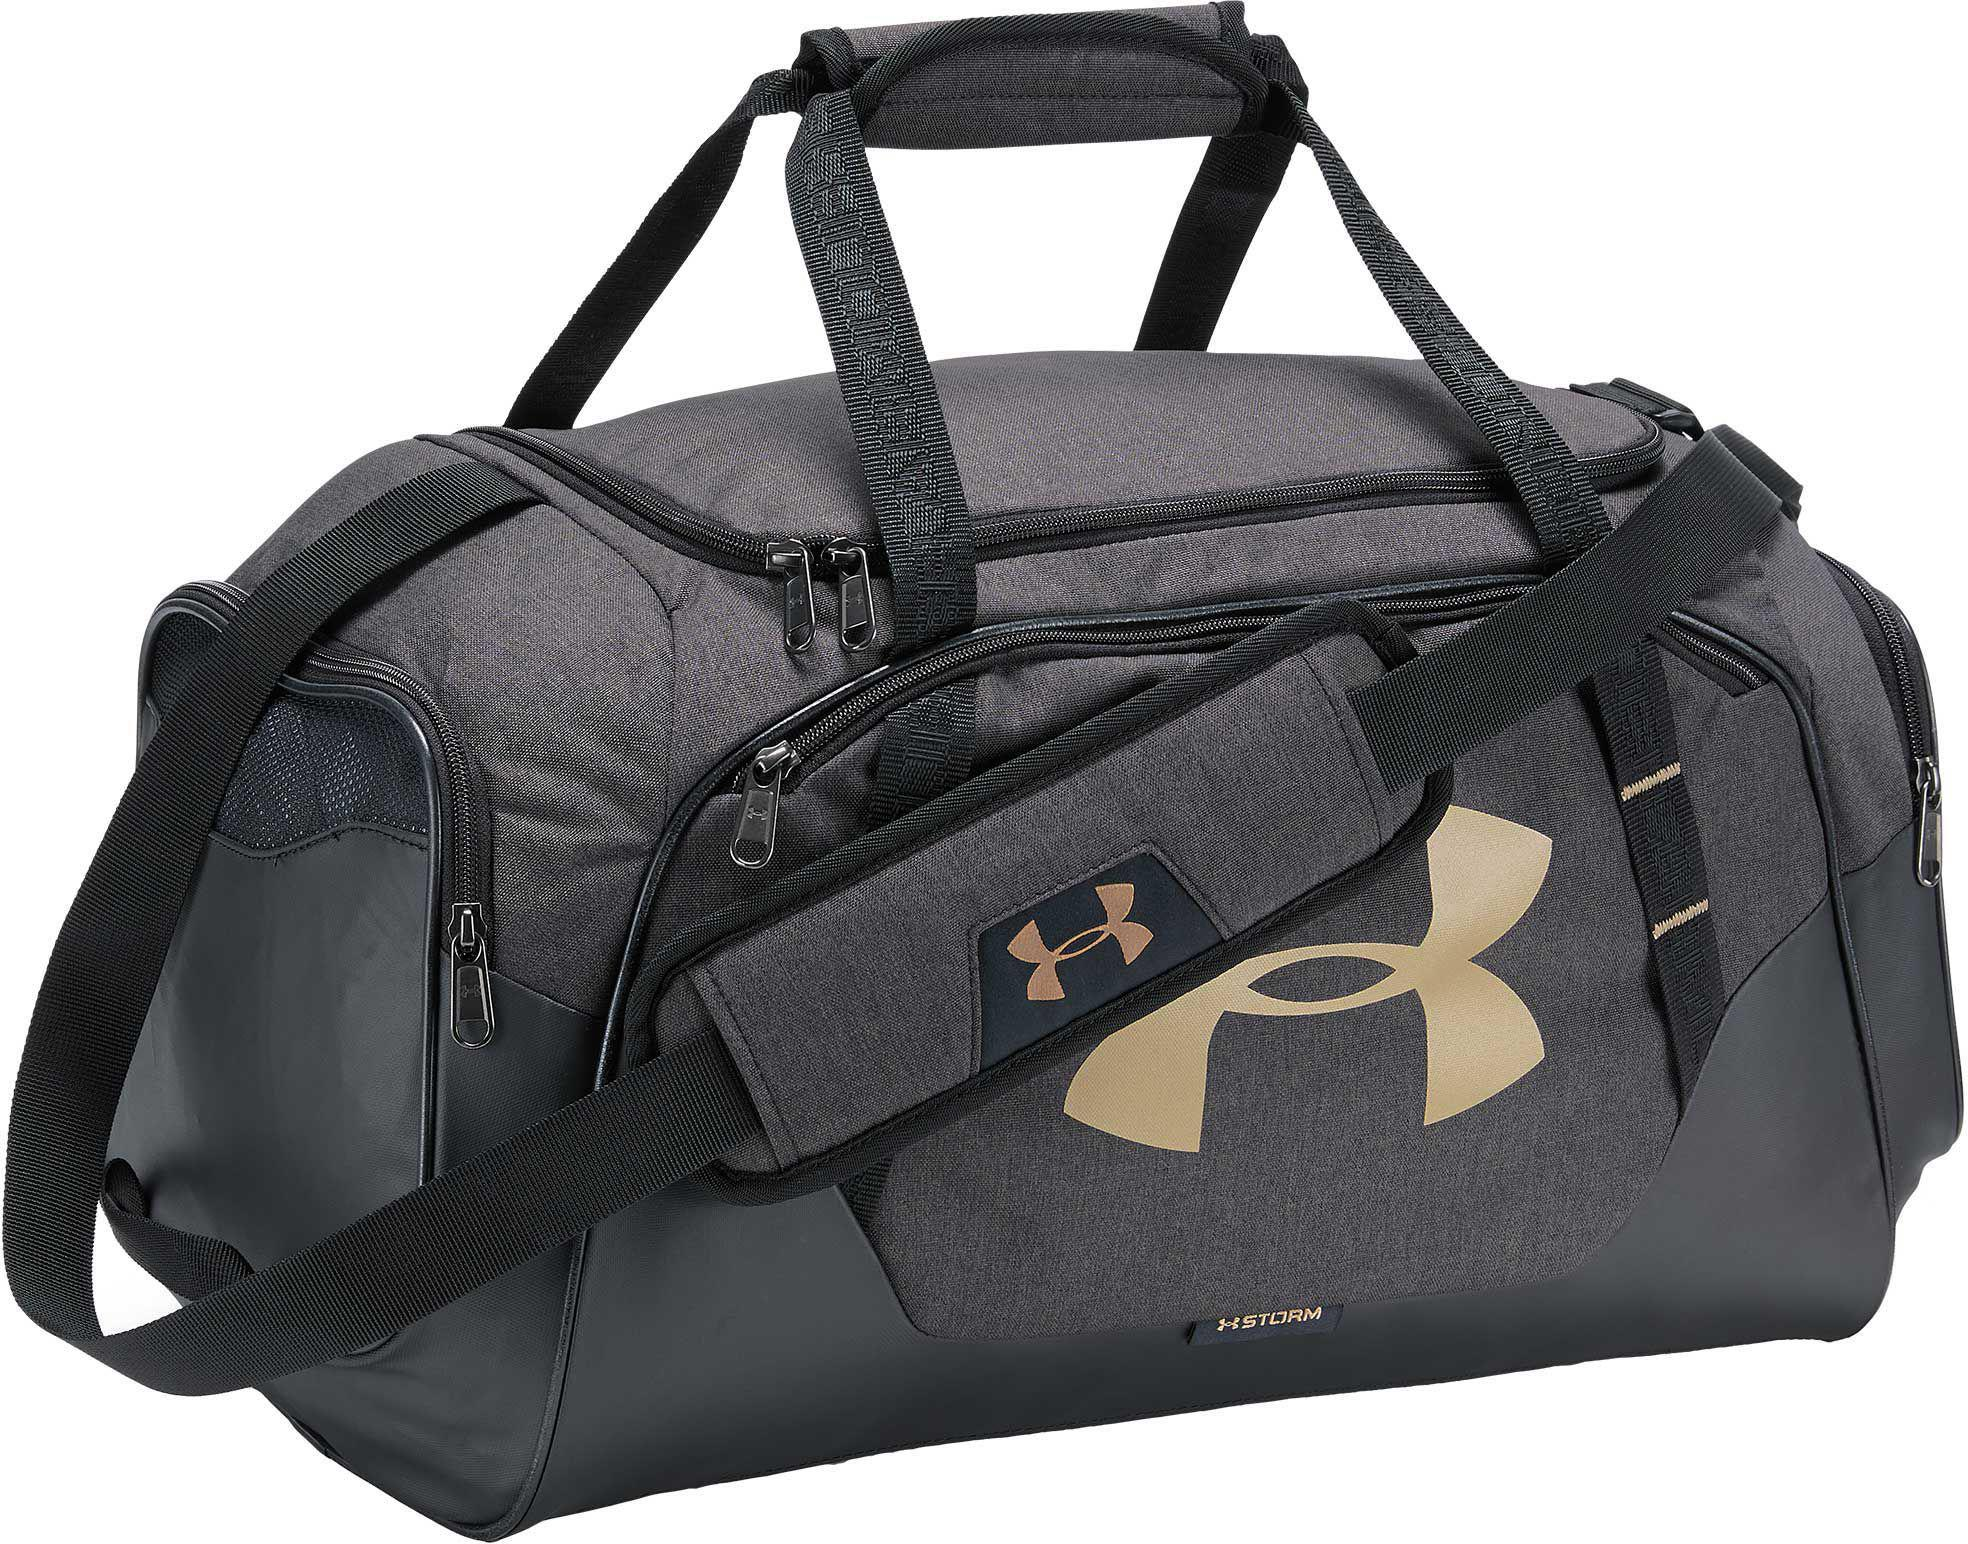 67844070ca Lyst - Under Armour Undeniable 3.0 Small Duffle Bag in Black for Men